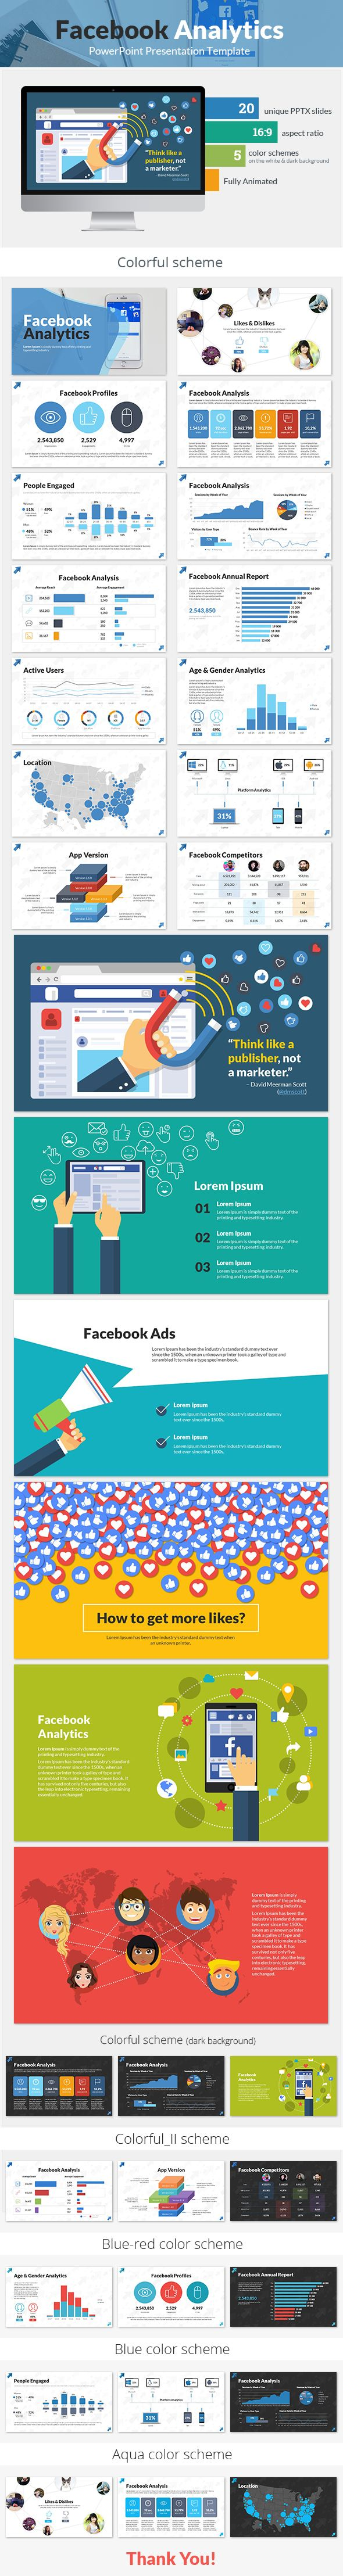 Facebook analytics powerpoint presentation template powerpoint facebook analytics powerpoint presentation template powerpoint presentation templates presentation templates and business powerpoint templates accmission Choice Image